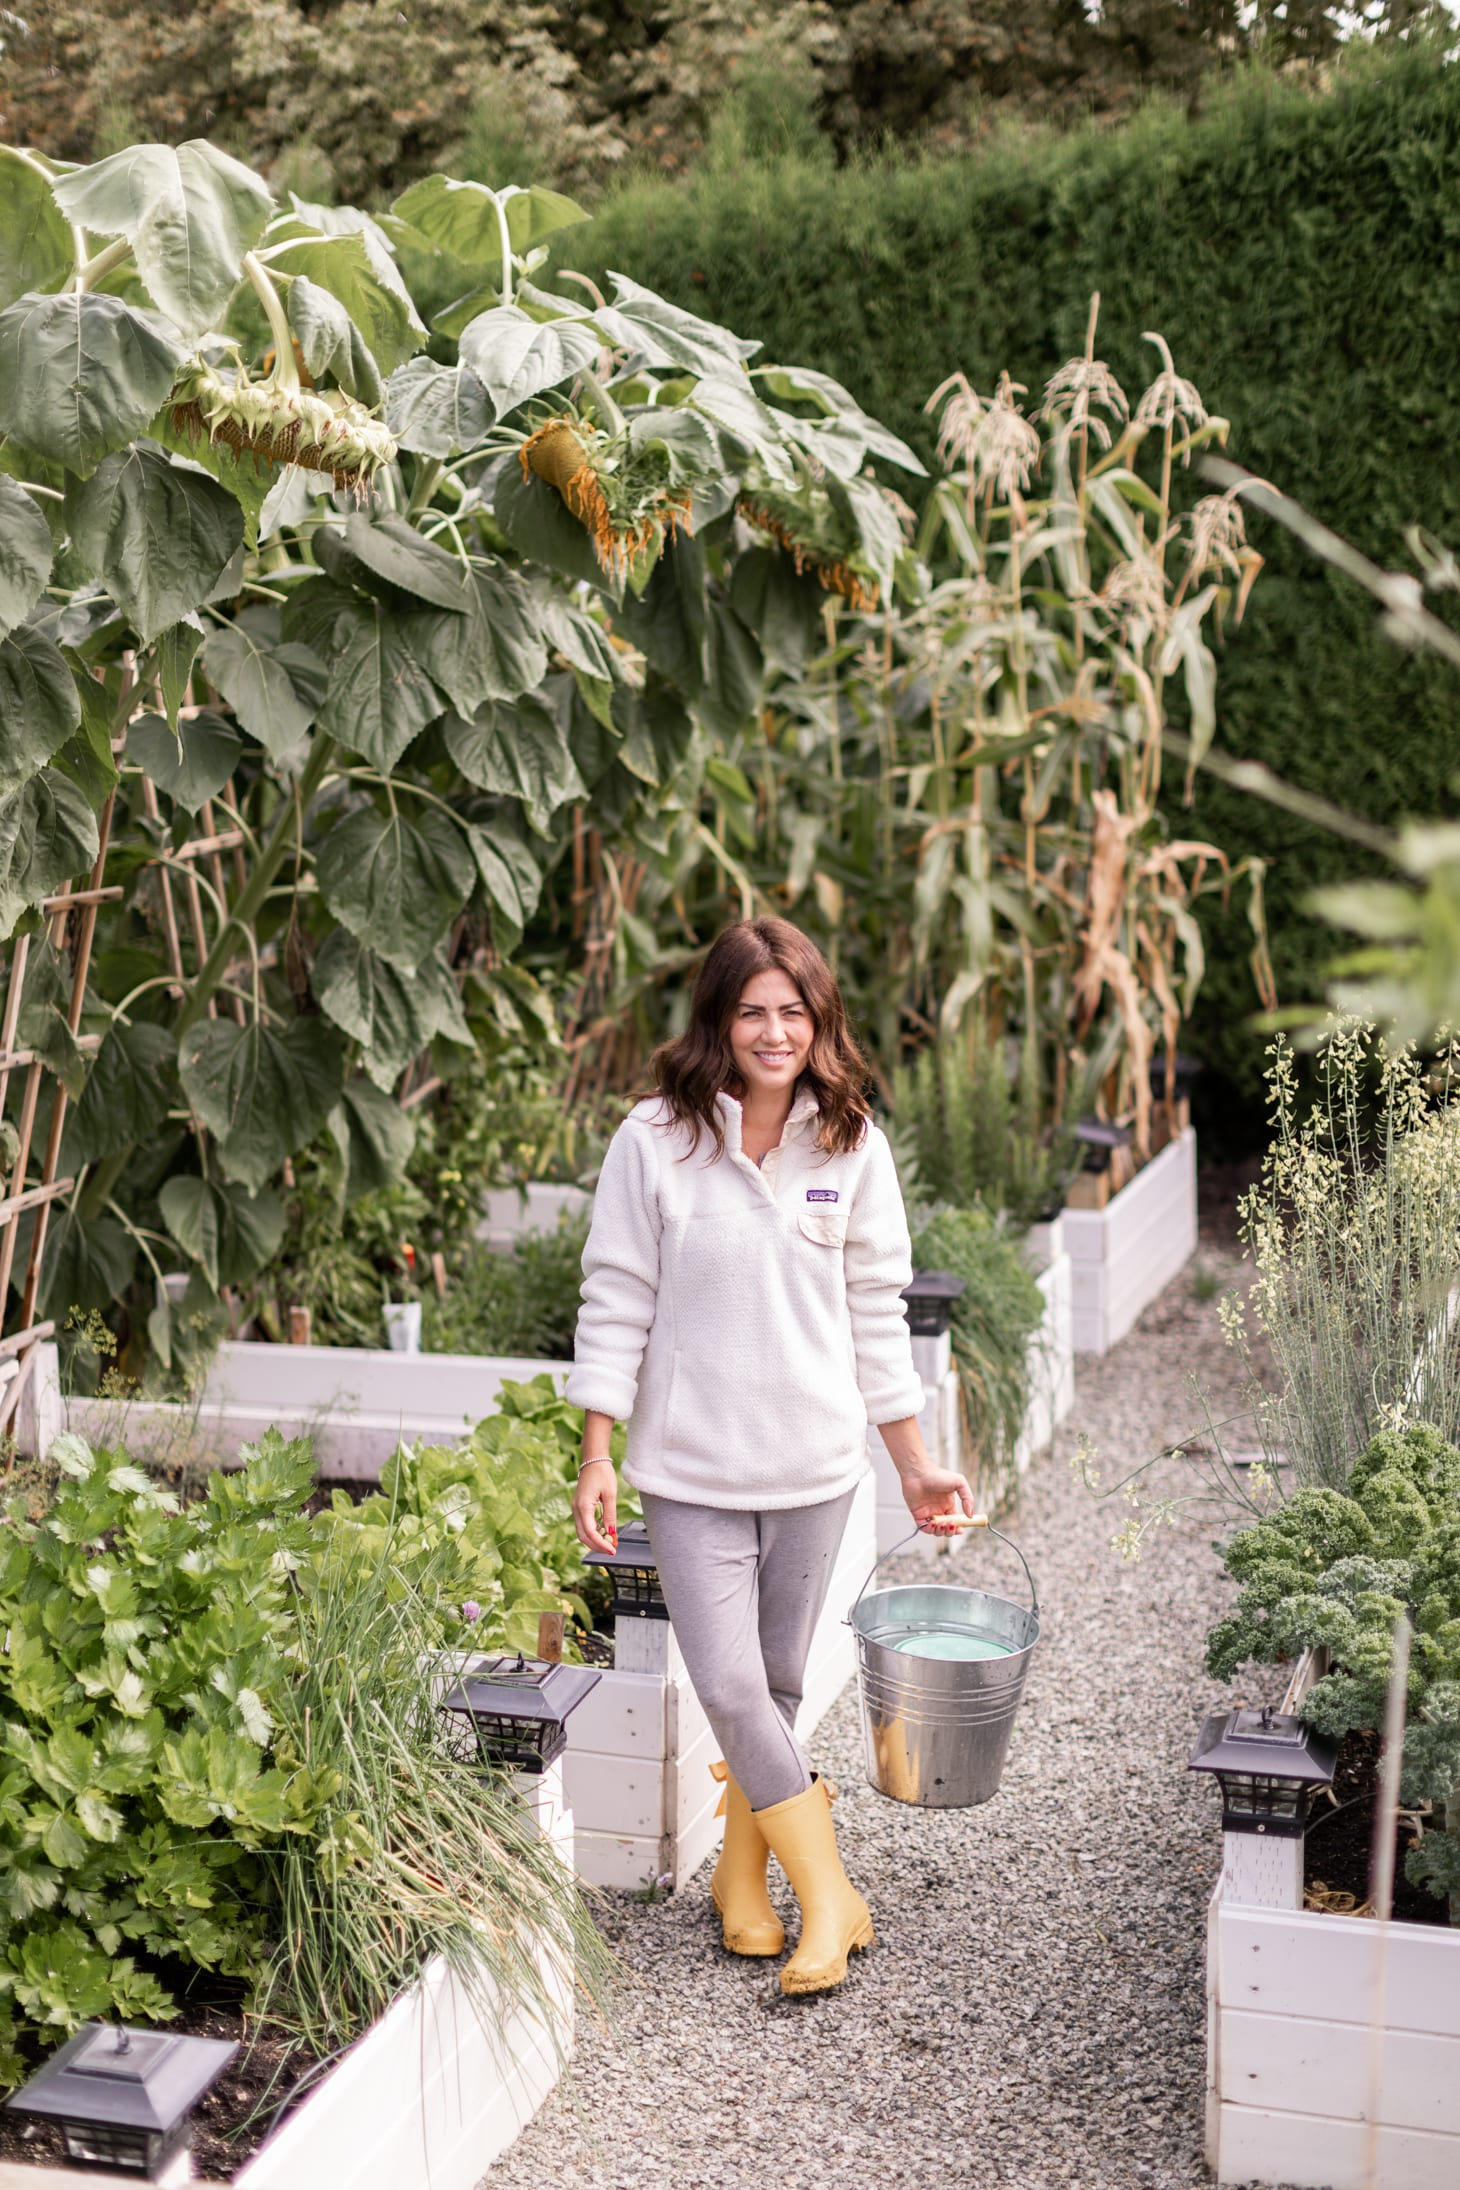 Jillian Harris The Dirt on Composting for Beginners